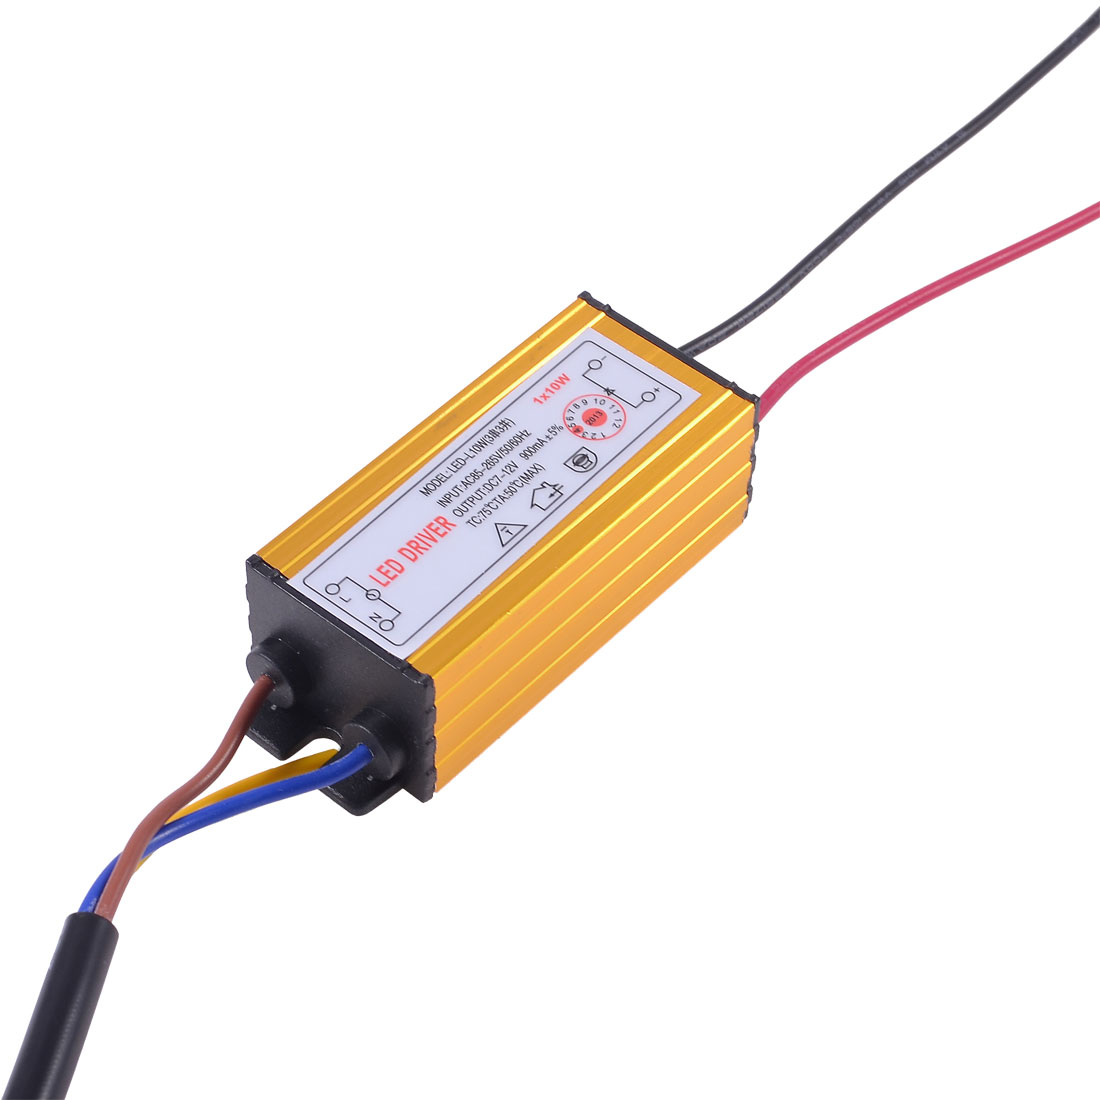 1x10W LED Light Driver IP66 Waterproof Power Supply DC7-12V 900mA